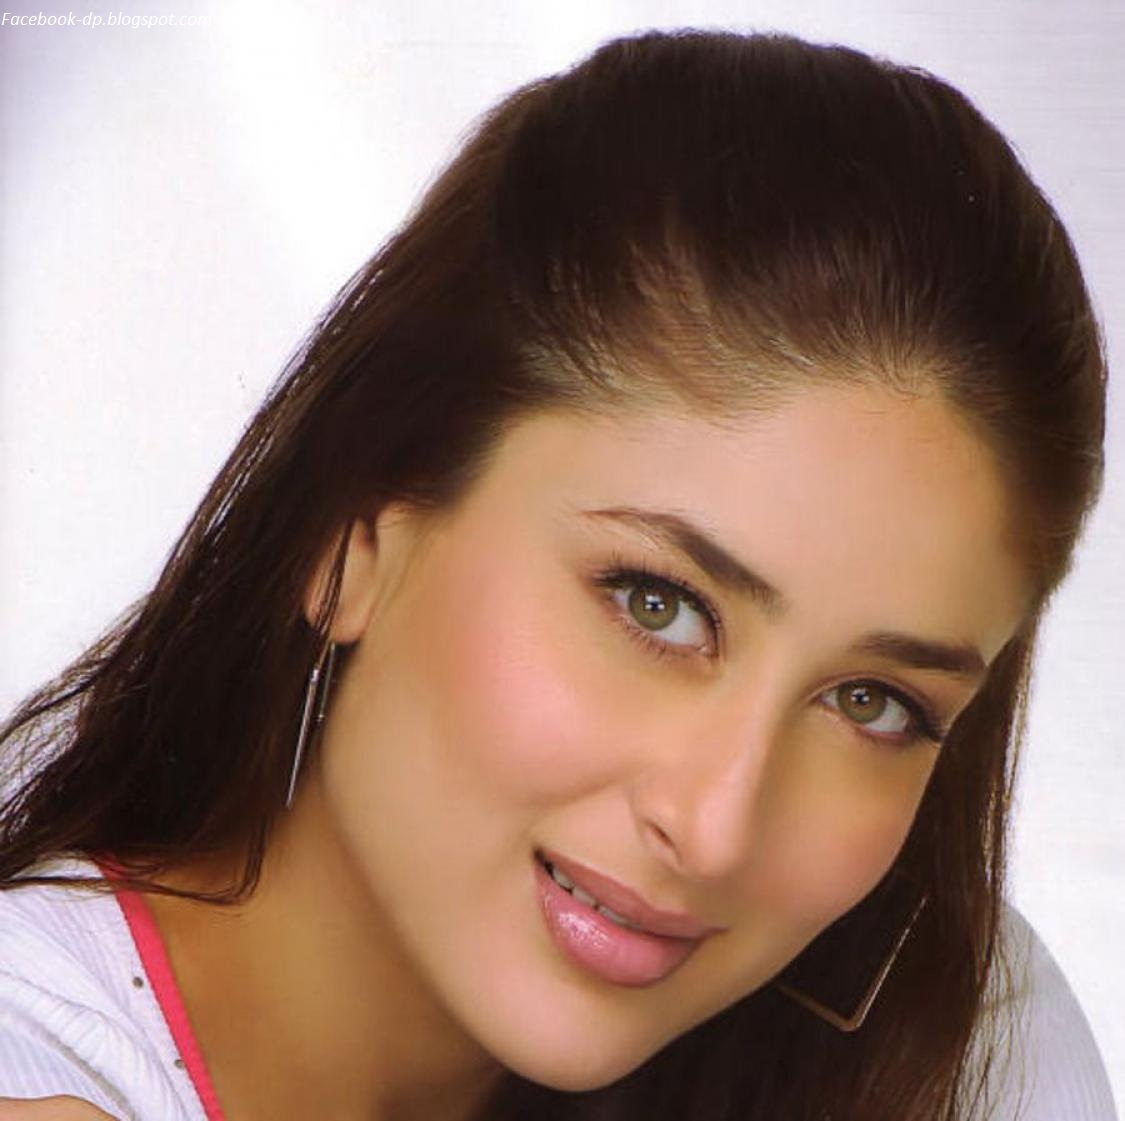 http://2.bp.blogspot.com/-LgyMWVUnafs/Tndw2YMPfZI/AAAAAAAAAu4/9pSkgd-UUig/s1600/kareena+kapoor+pics%2C+indian+actor+picture%2Chot+images%2C+beautiful+karina+picture%2Ccool+kareena+kapoor+wallpapers%2C+dashing%2C+smart++pics%2Cfacebook%2Cimage%2Cpicture%2Cwallpapers%2Cfacebook+profile+pic+1+%2812%29.jpg